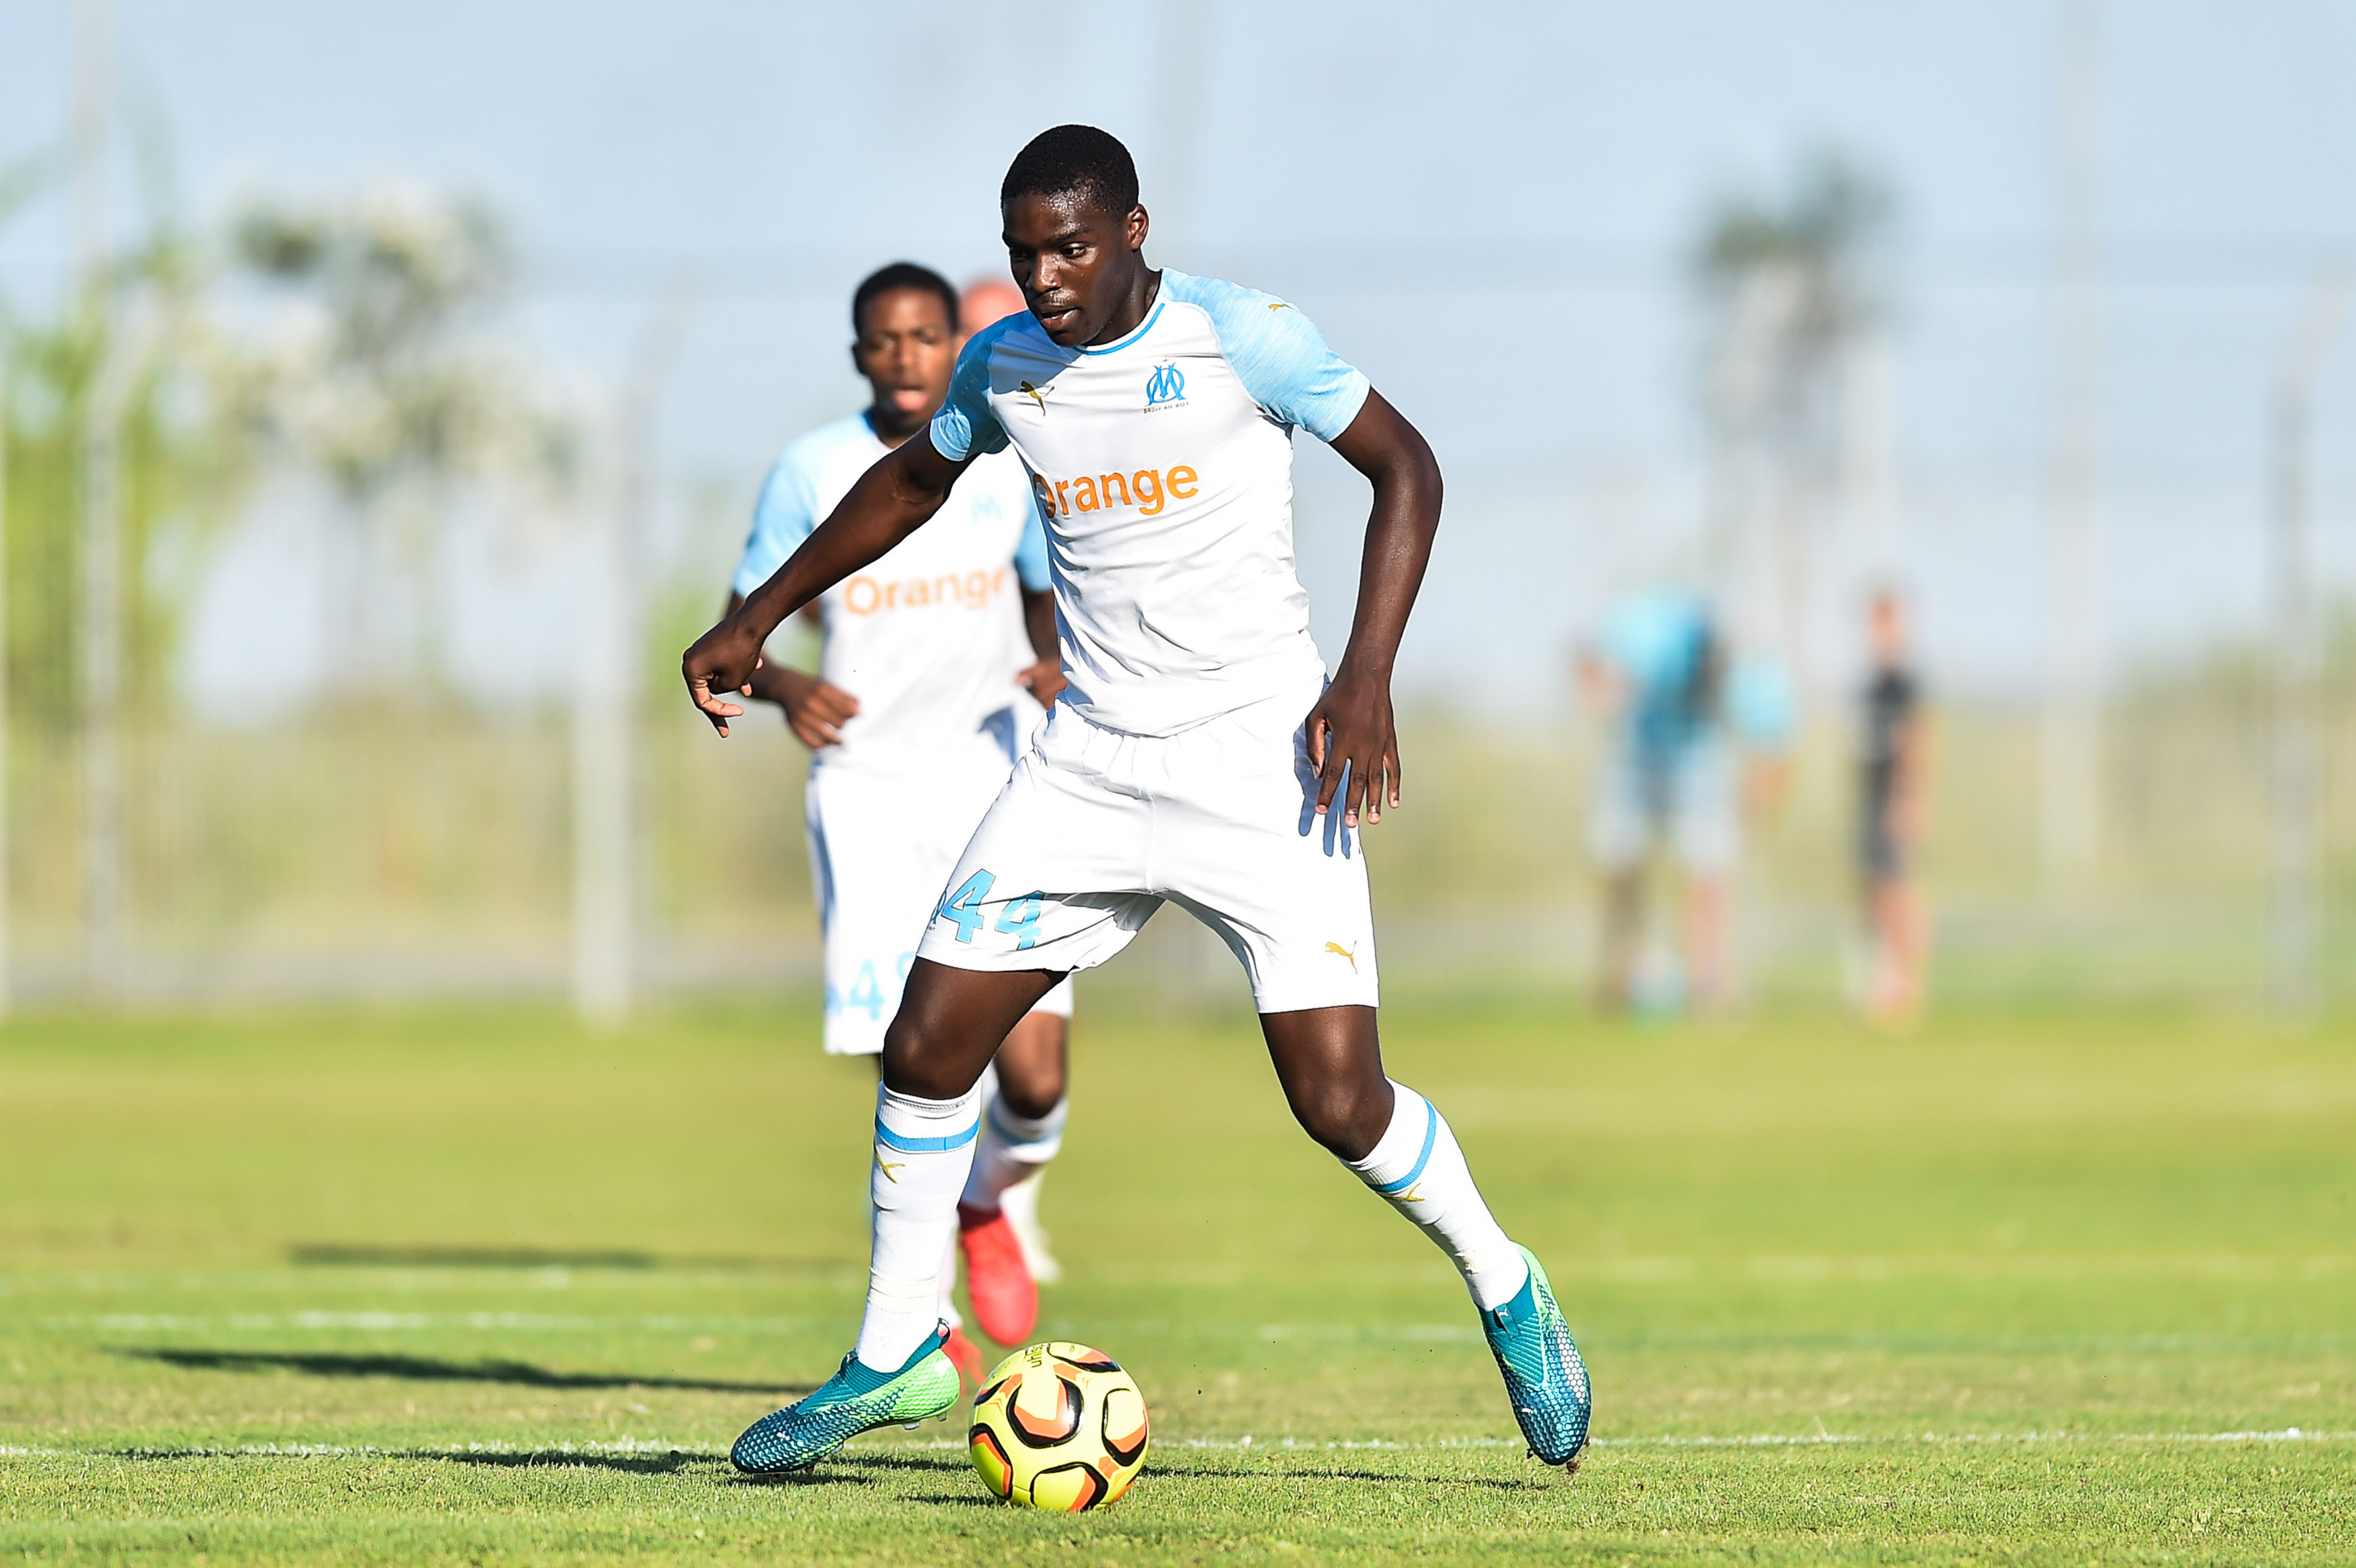 Olympique Marseille v AS Beziers - Friendly match